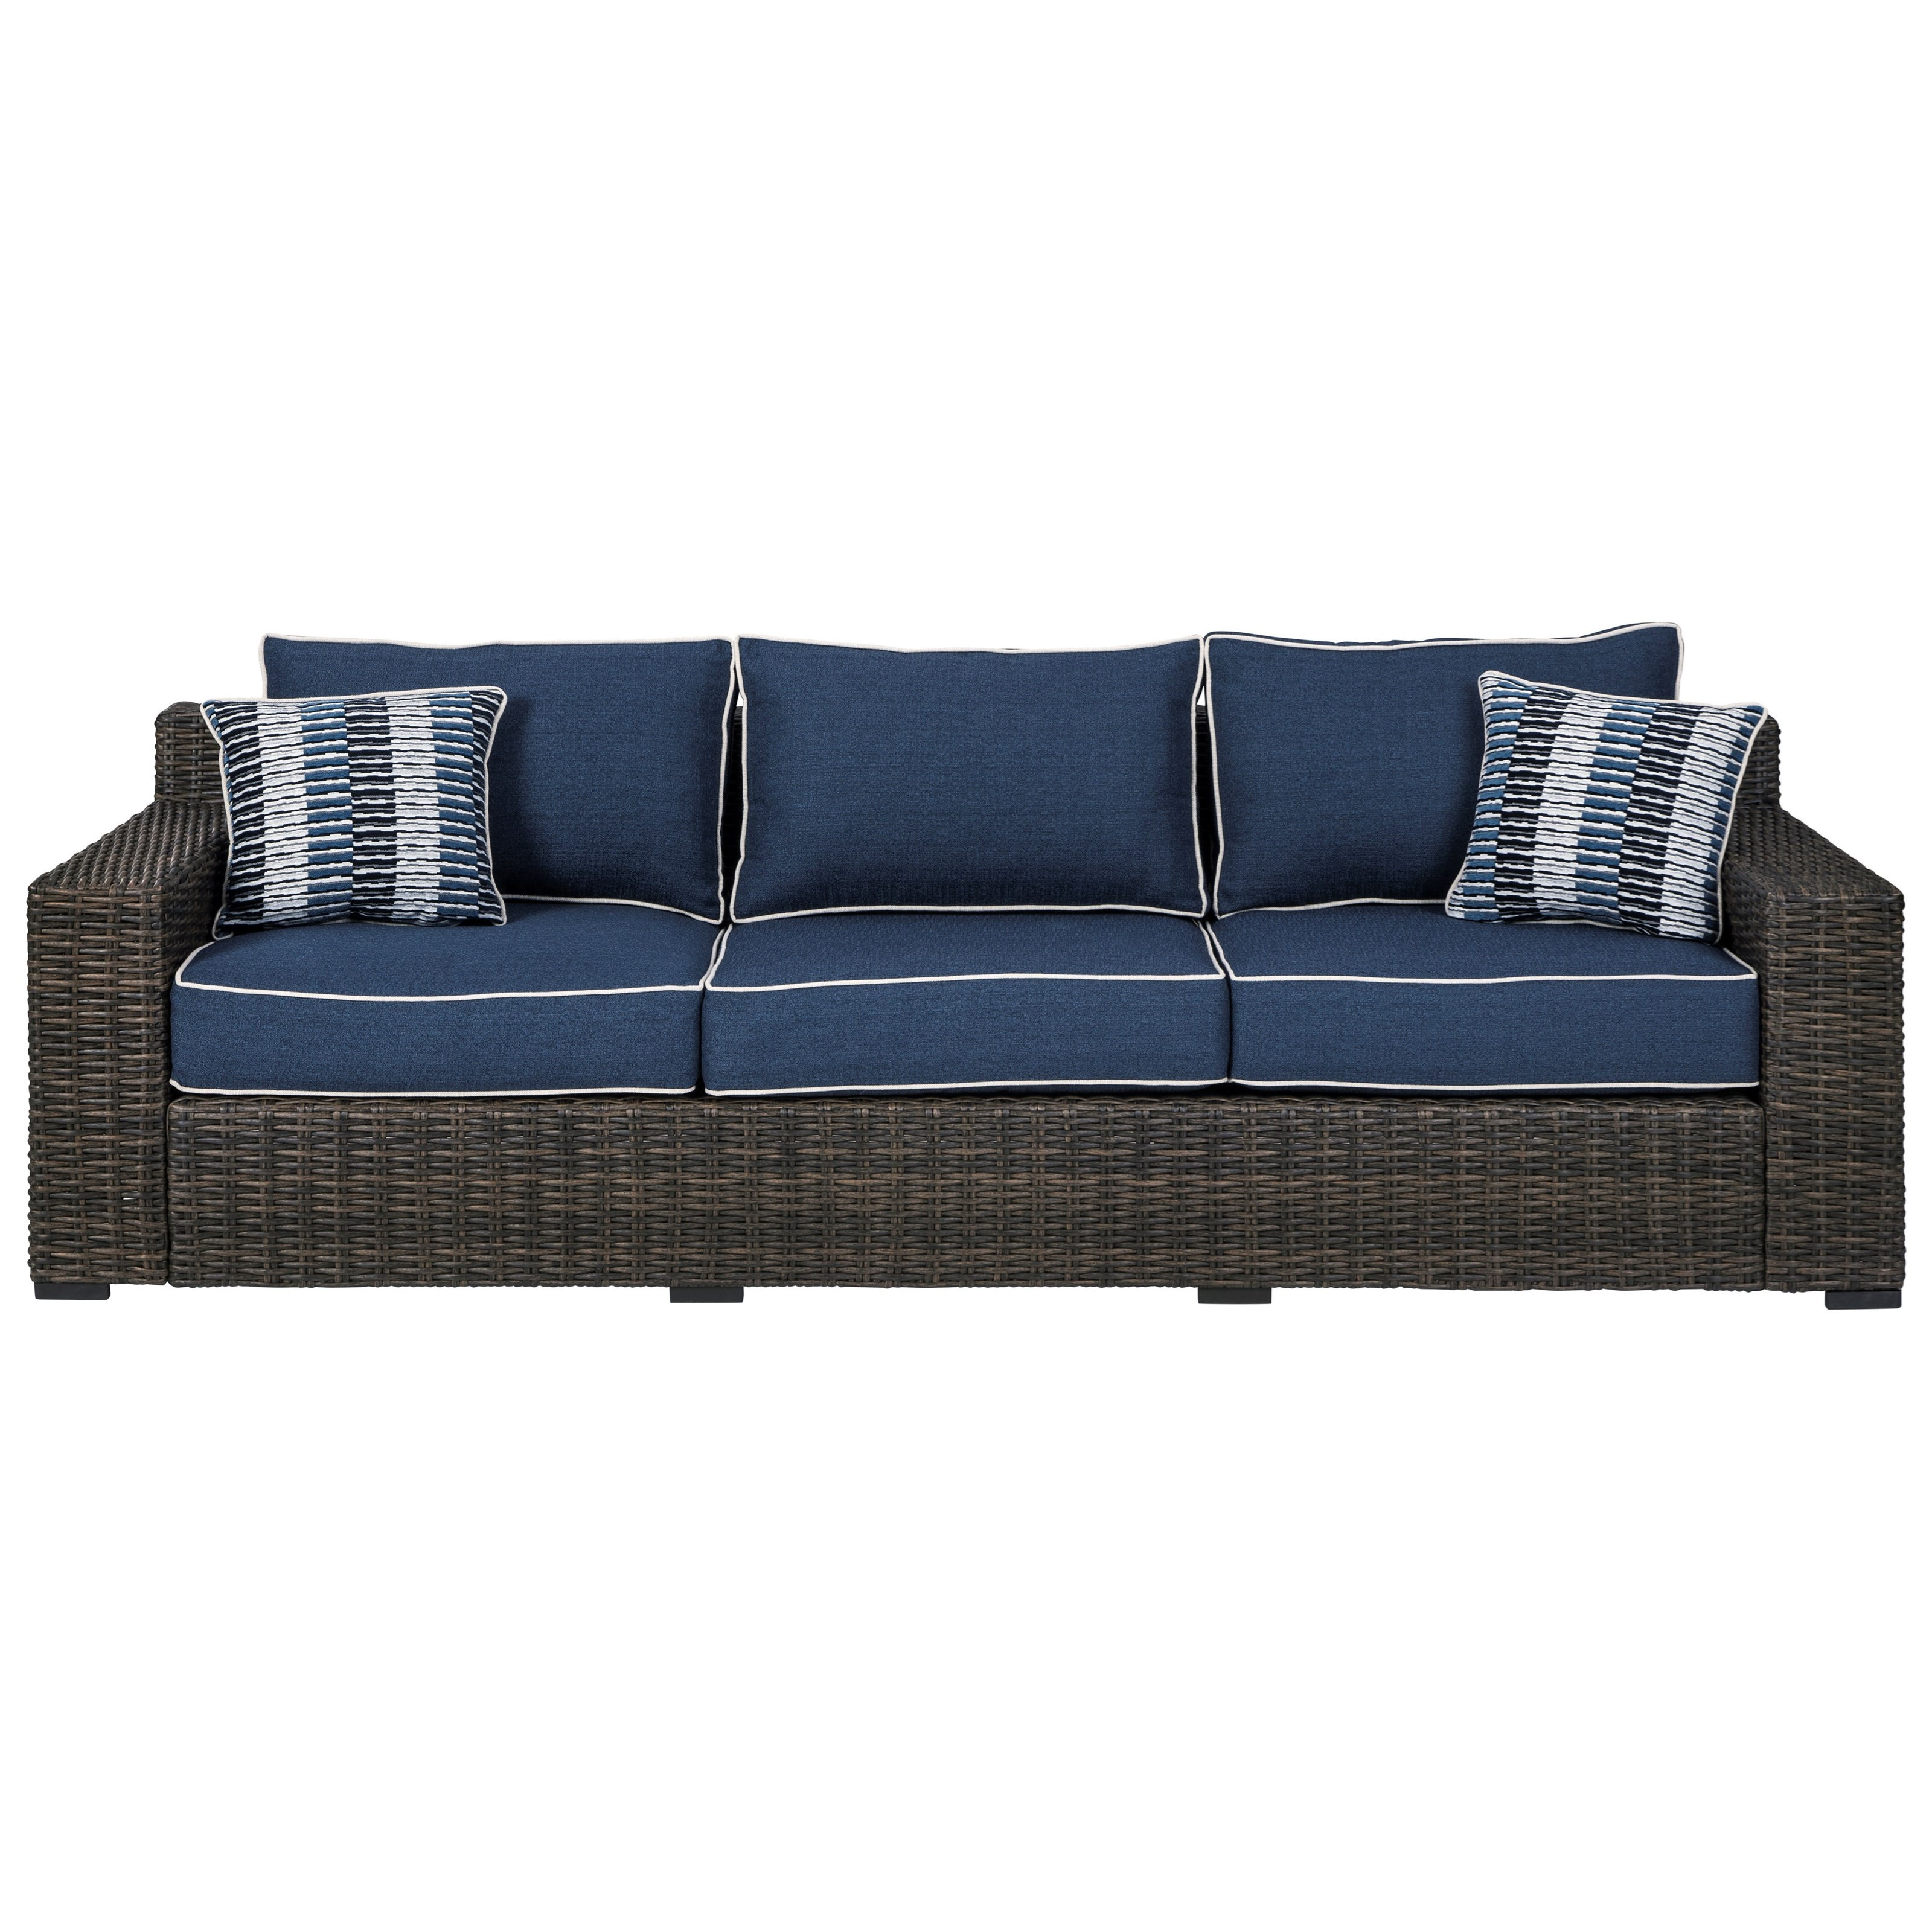 Grasson Lane Sofa with Cushion by Signature at Walker's Furniture